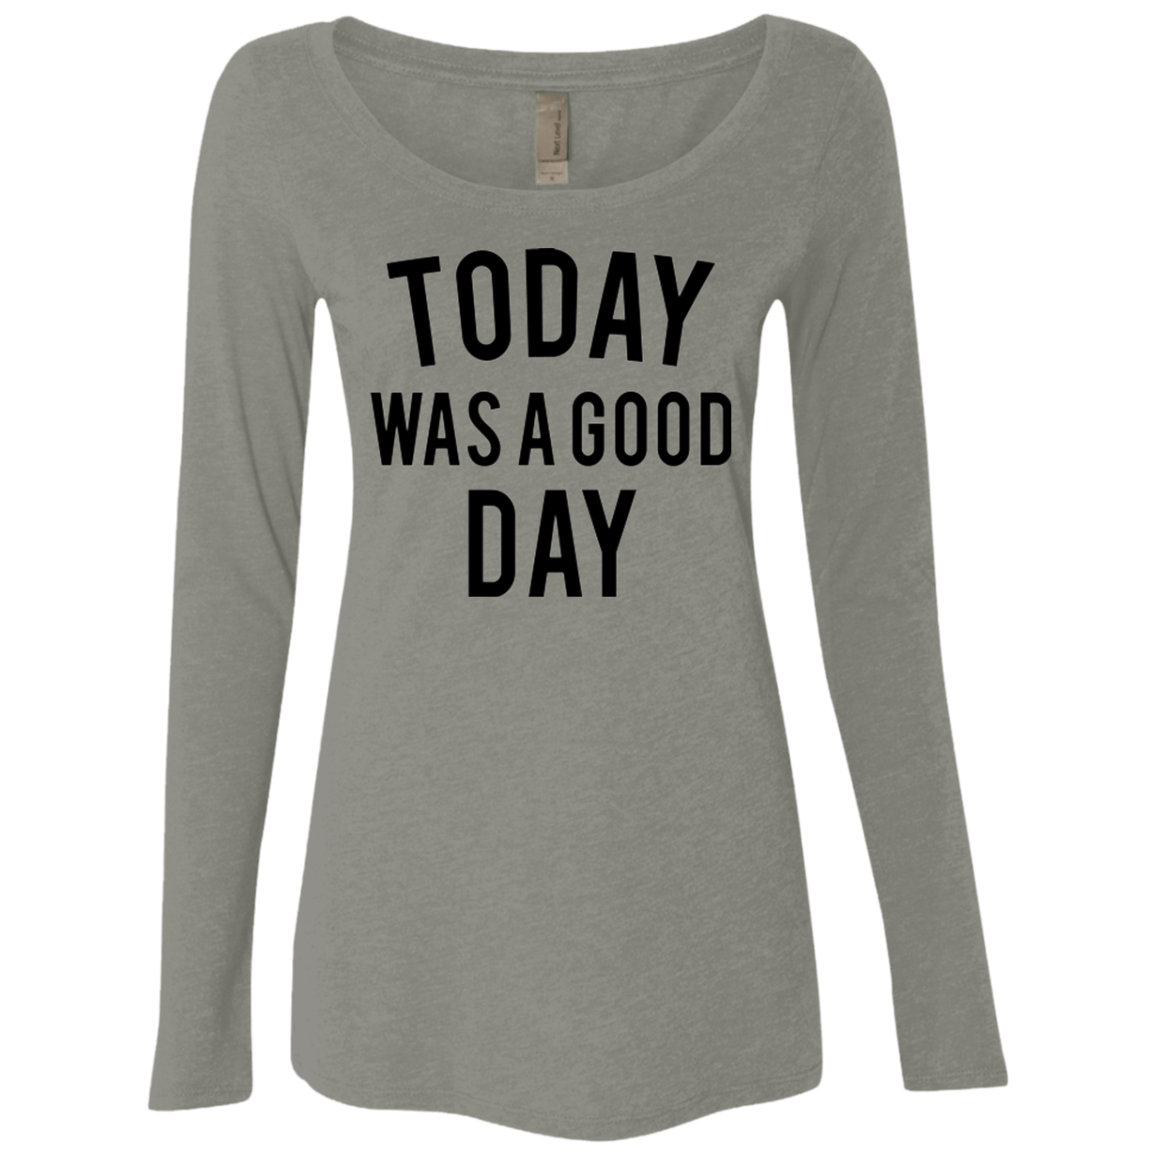 Today was a Good Day Women's Long Sleeve Tee